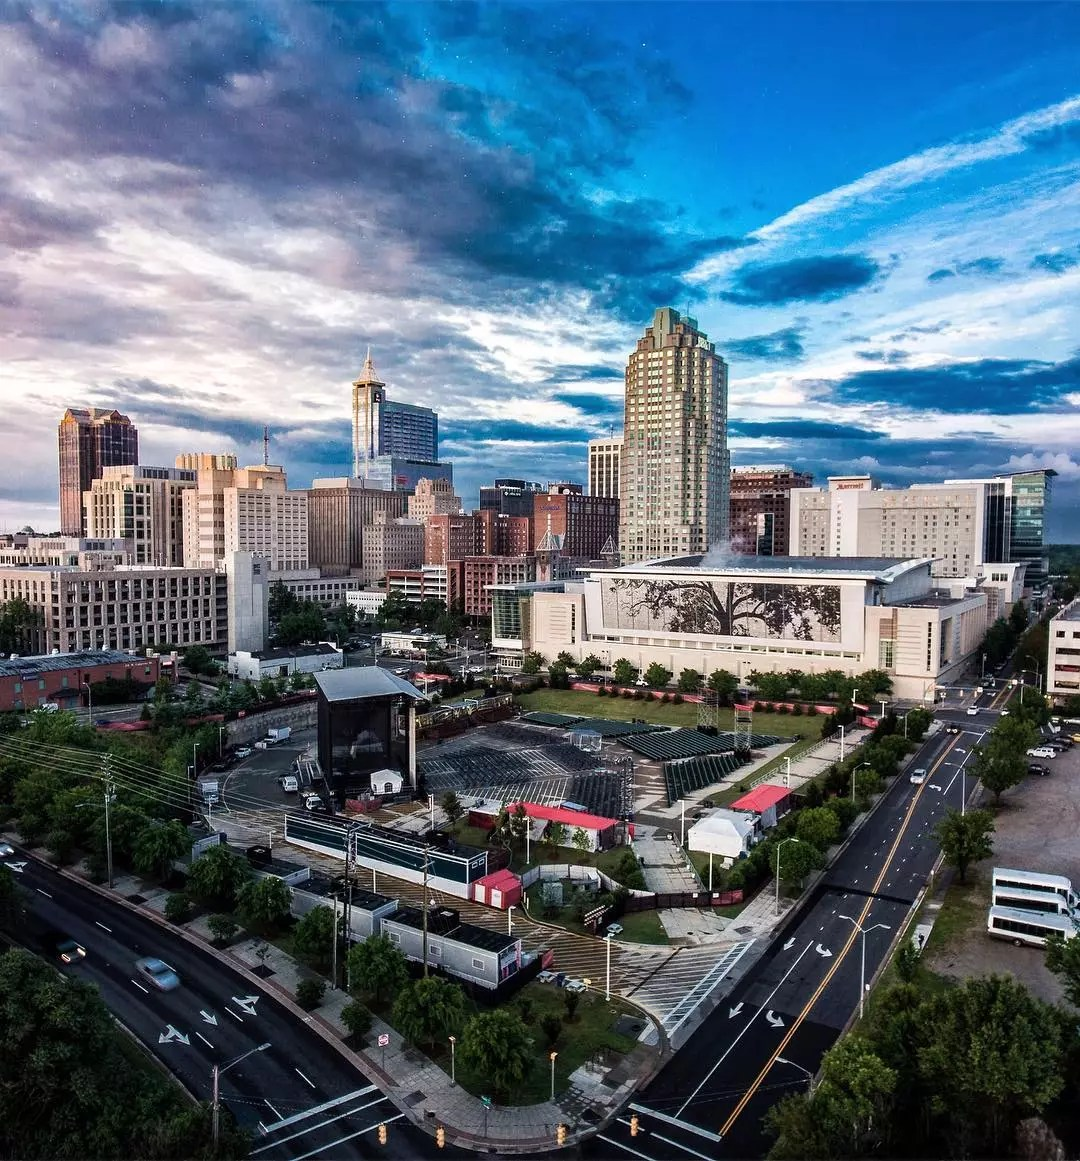 Downtown Skyline of Raleigh NC photo at dusk photo by Instagram user @visitraleigh